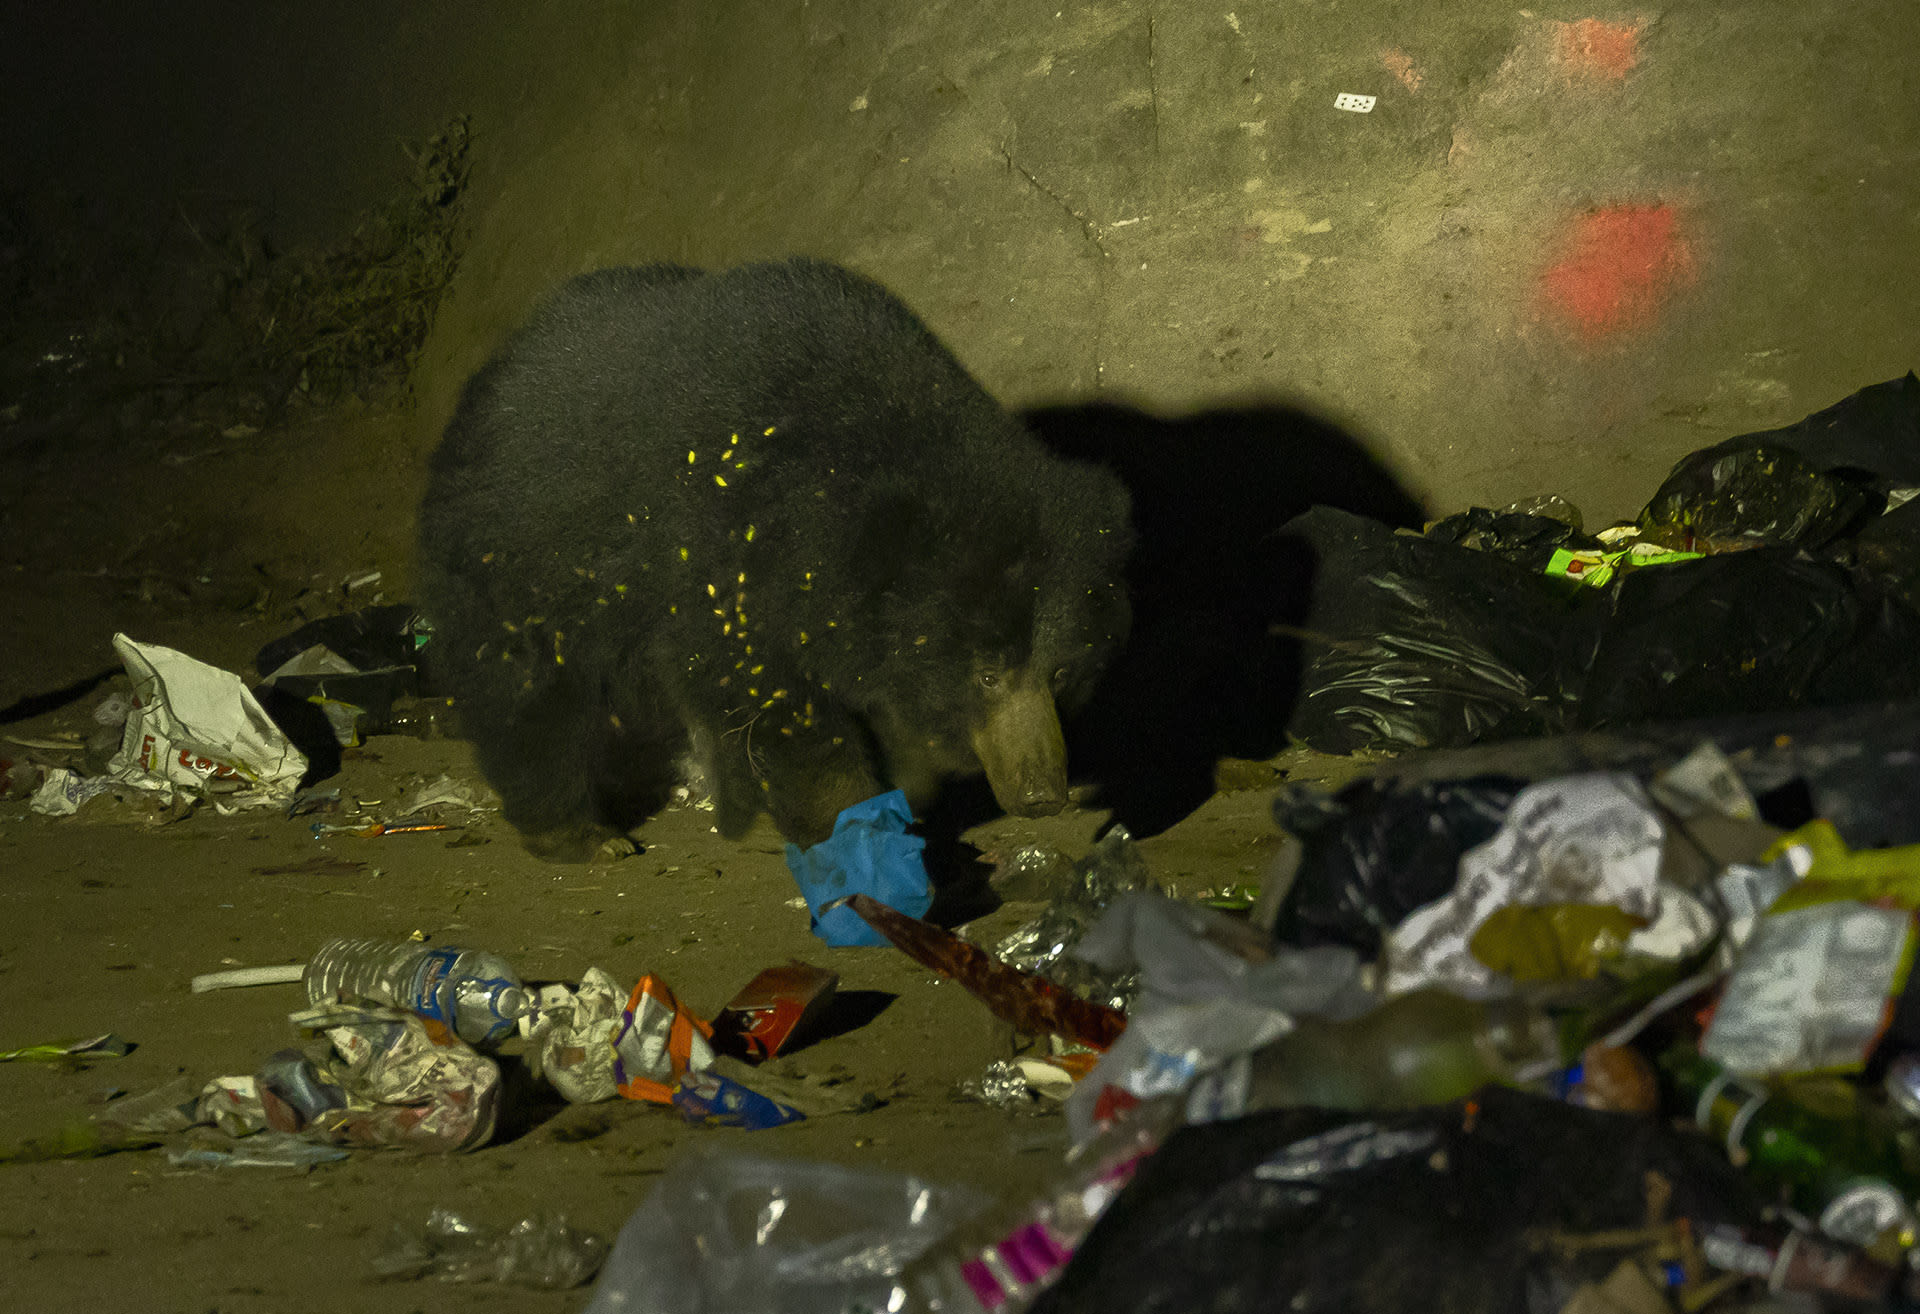 """Near Mt Abu in Rajasthan, sloth bears have been reported around garbage dumps in and around the town. """"During temple season, they follow large groups of religious pilgrims for days and eat their leftovers,"""" says wildlife photographer Dhritiman Mukherjee. Improper disposal of organic waste is another cause for the increase in conflict with wildlife, especially in hill station towns such as Mt Abu, where the boundaries between wild and domestic are porous."""